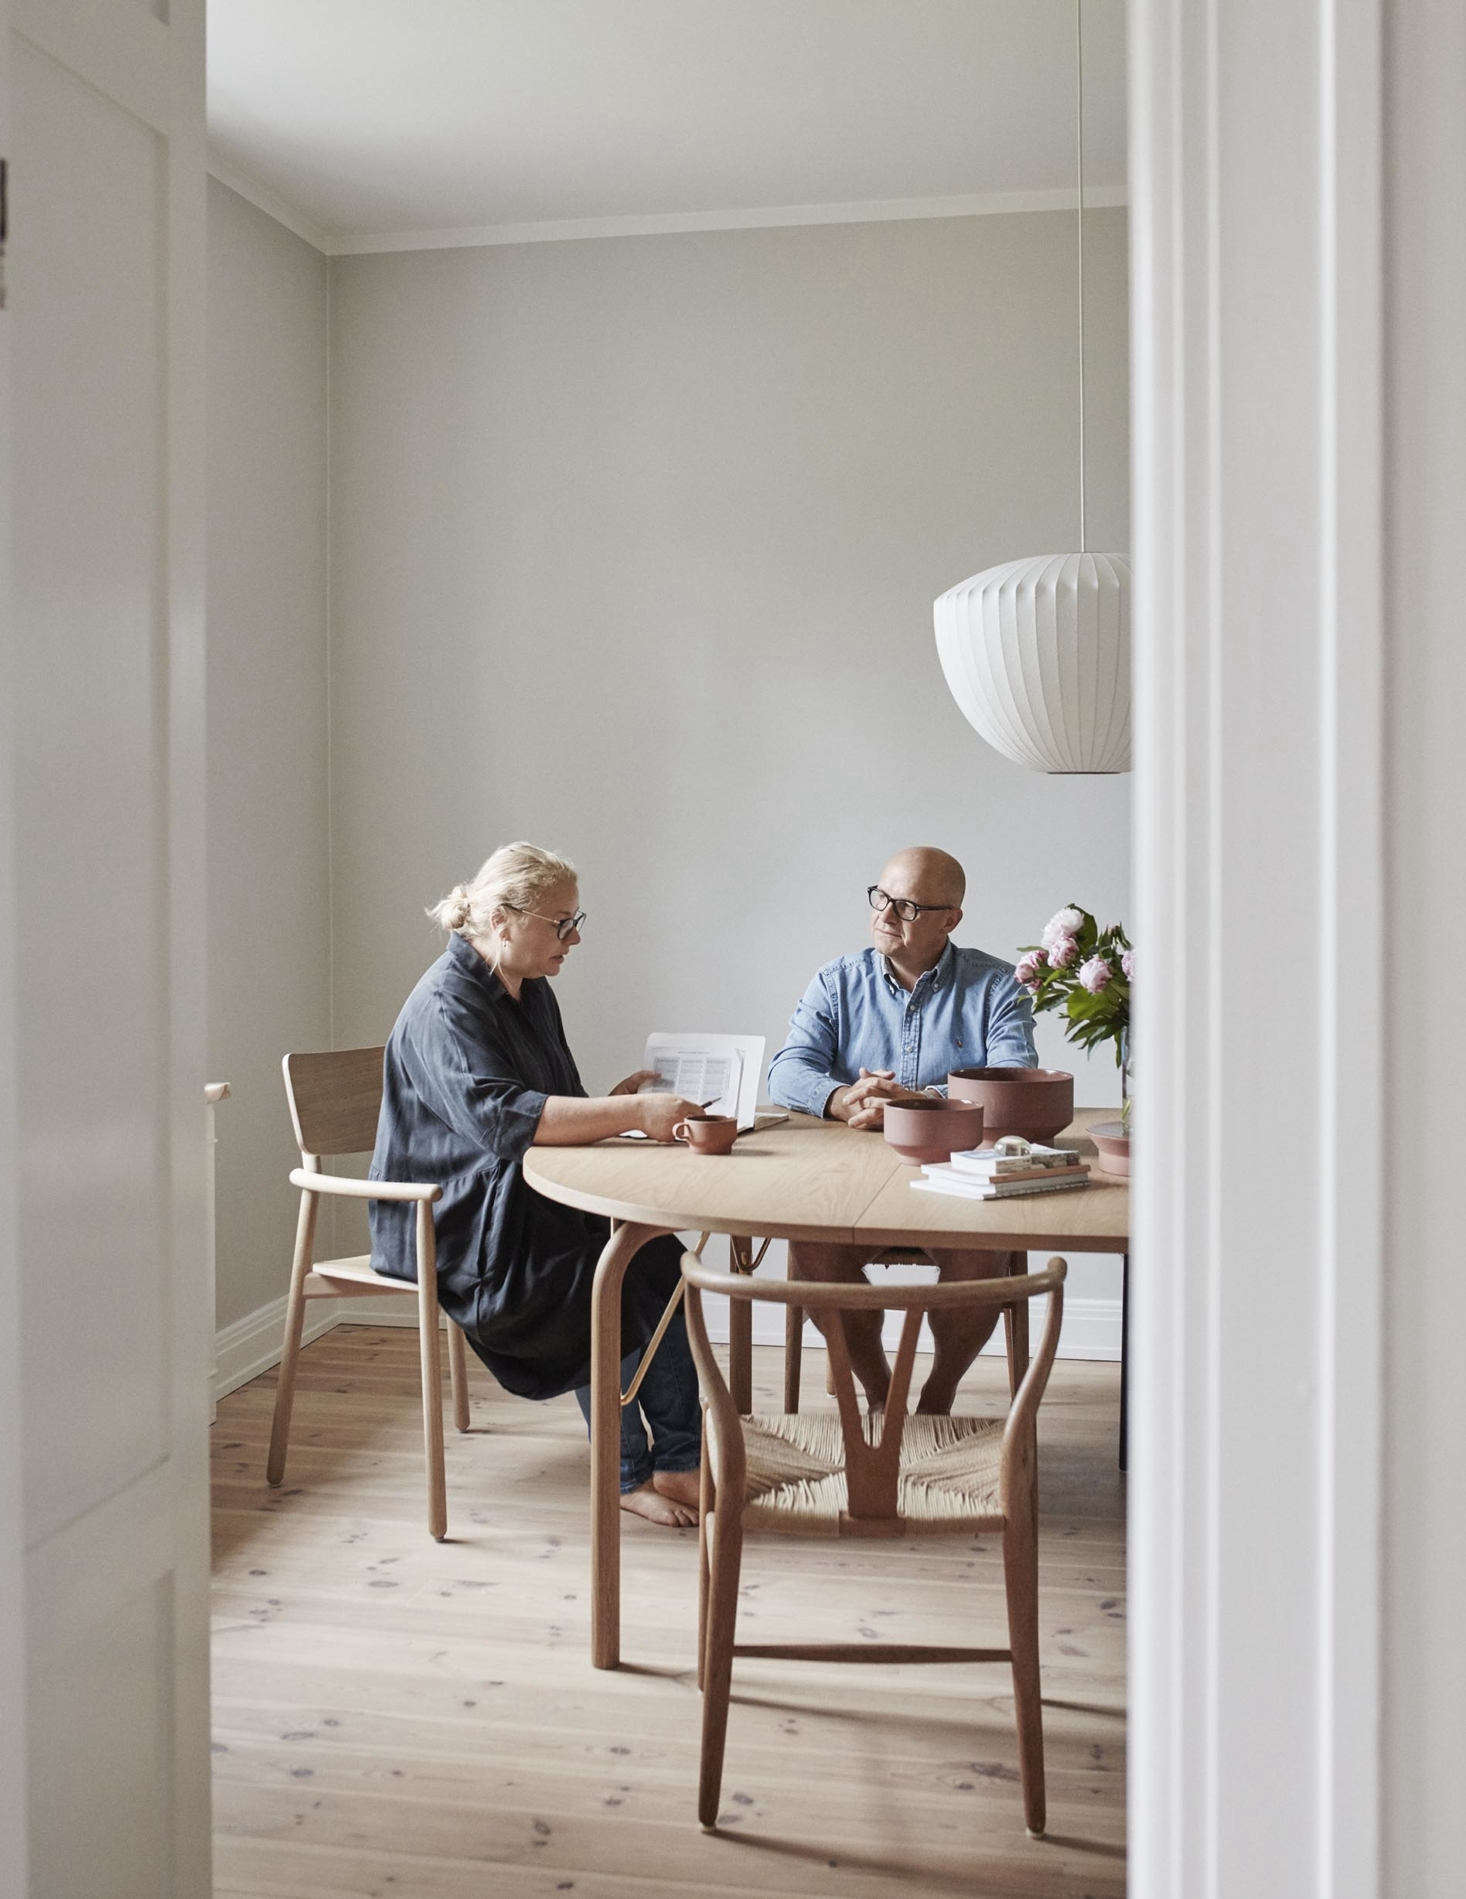 Jesper and Vibeke, in the dining room.